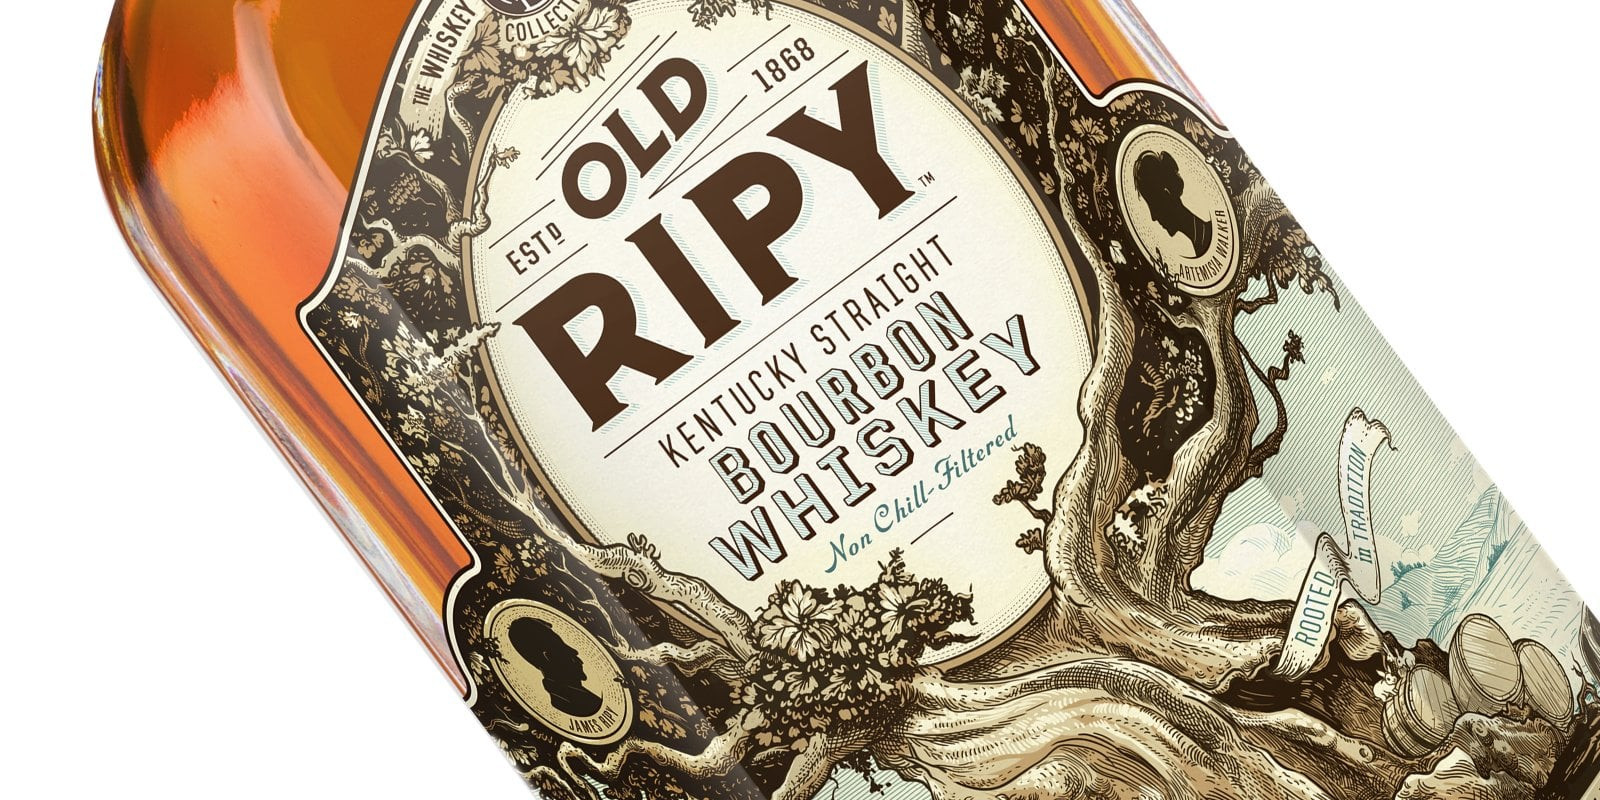 Campari Whiskey Barons Old Ripy-Banner Image